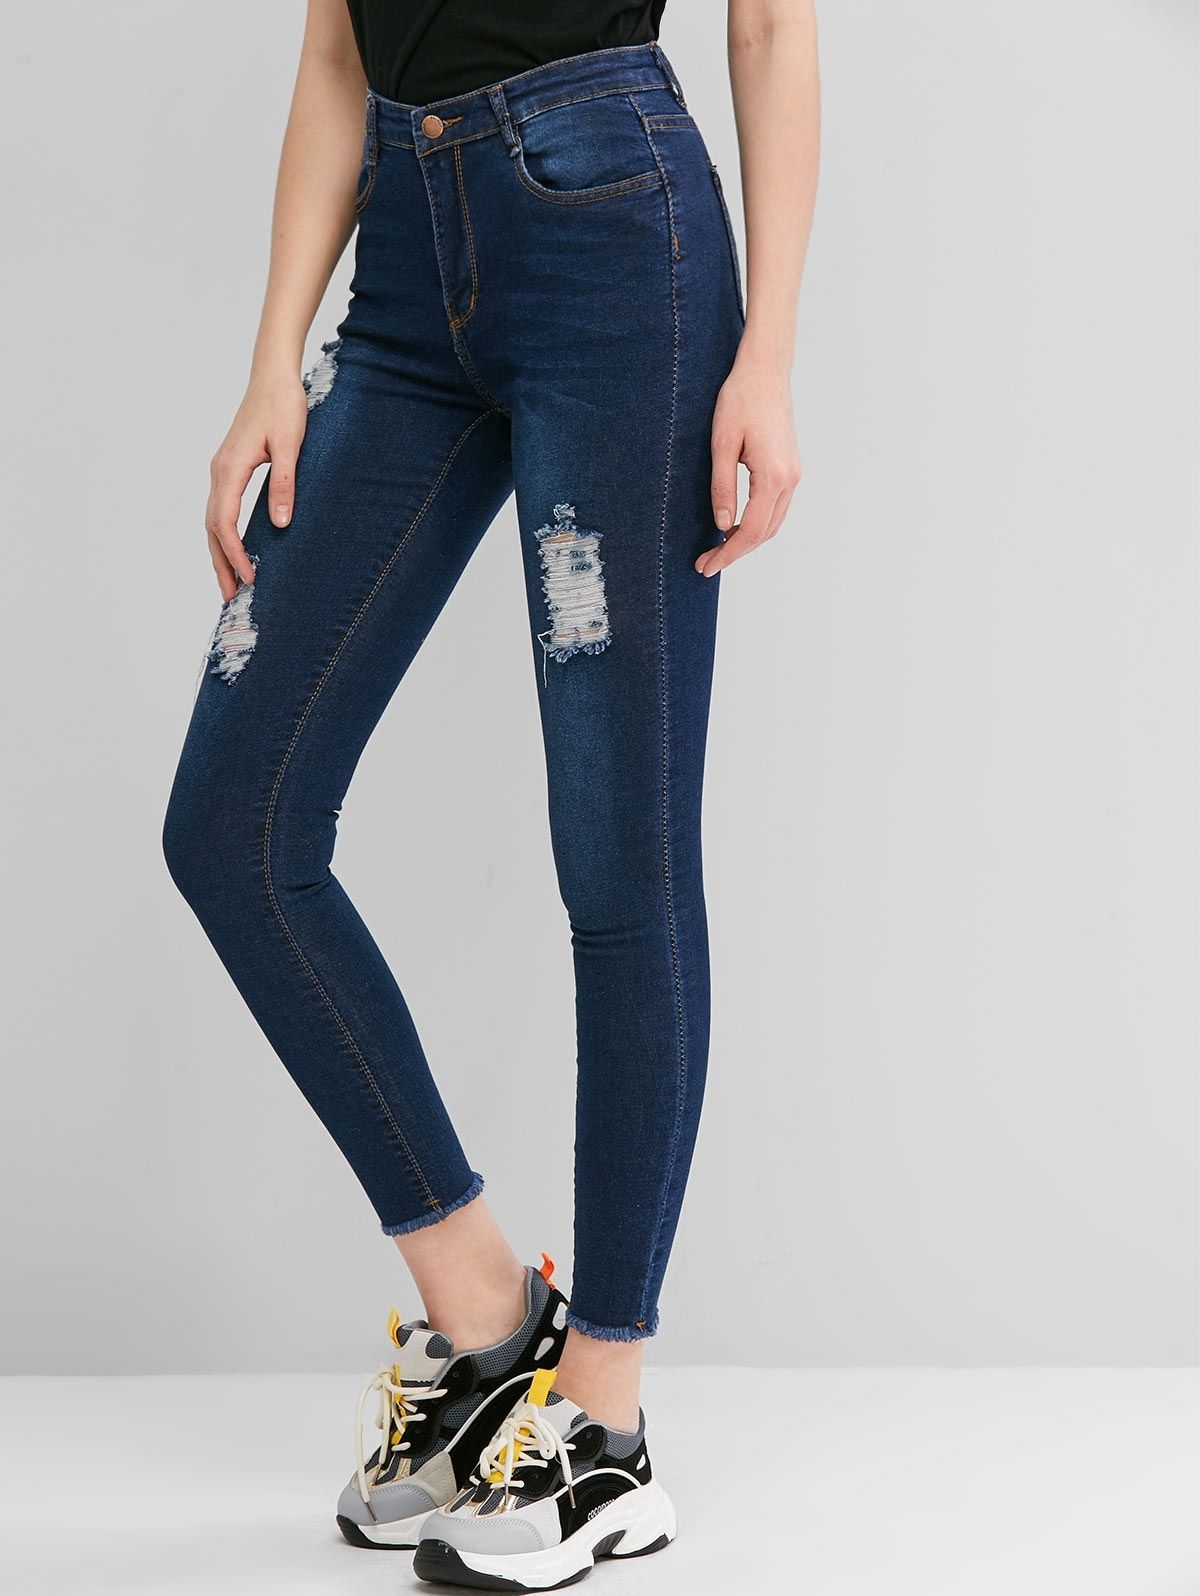 Photo of Denim And Jeans | High Waisted & Ripped Jeans